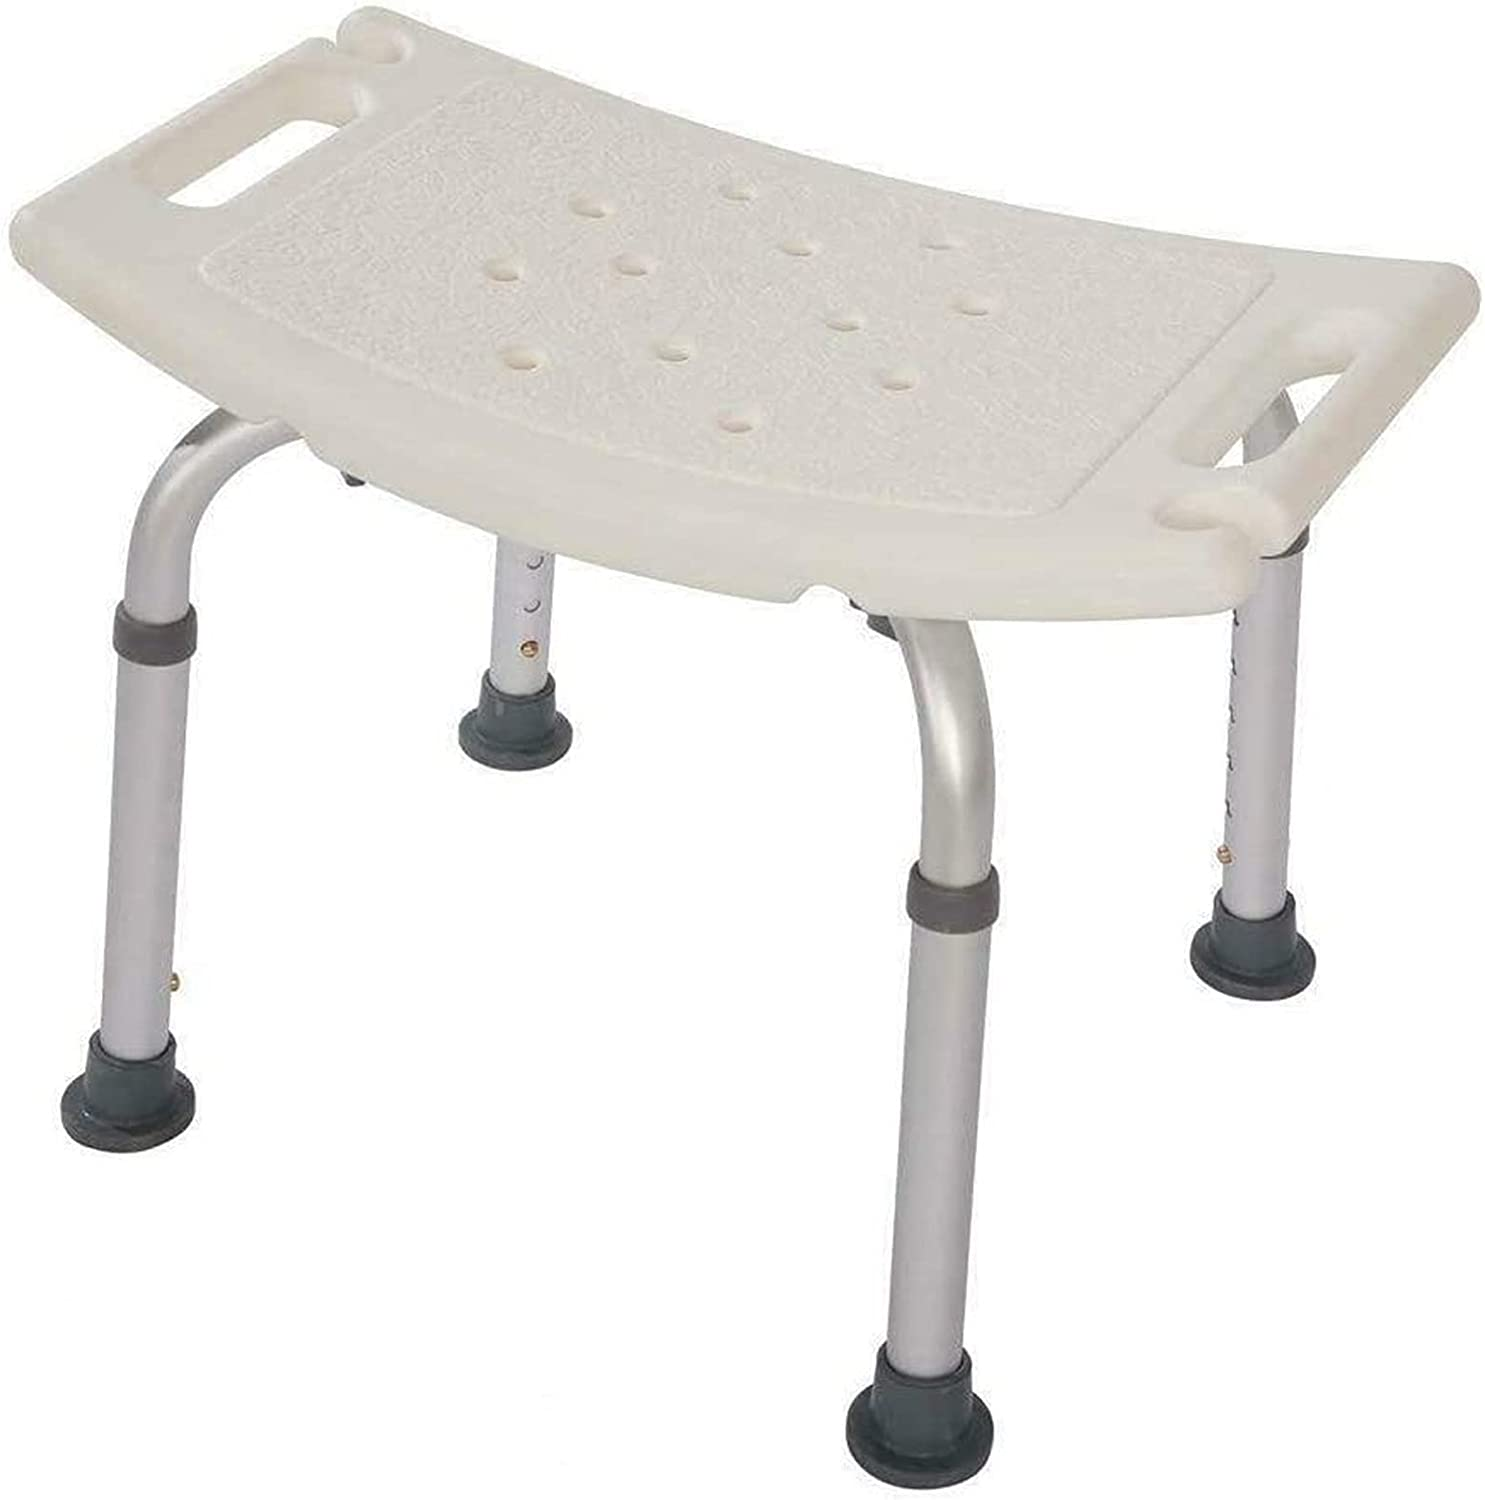 TUHFG Shower Stool Bath Max 77% OFF Max 57% OFF Seats Seniors for Elderly Chairs